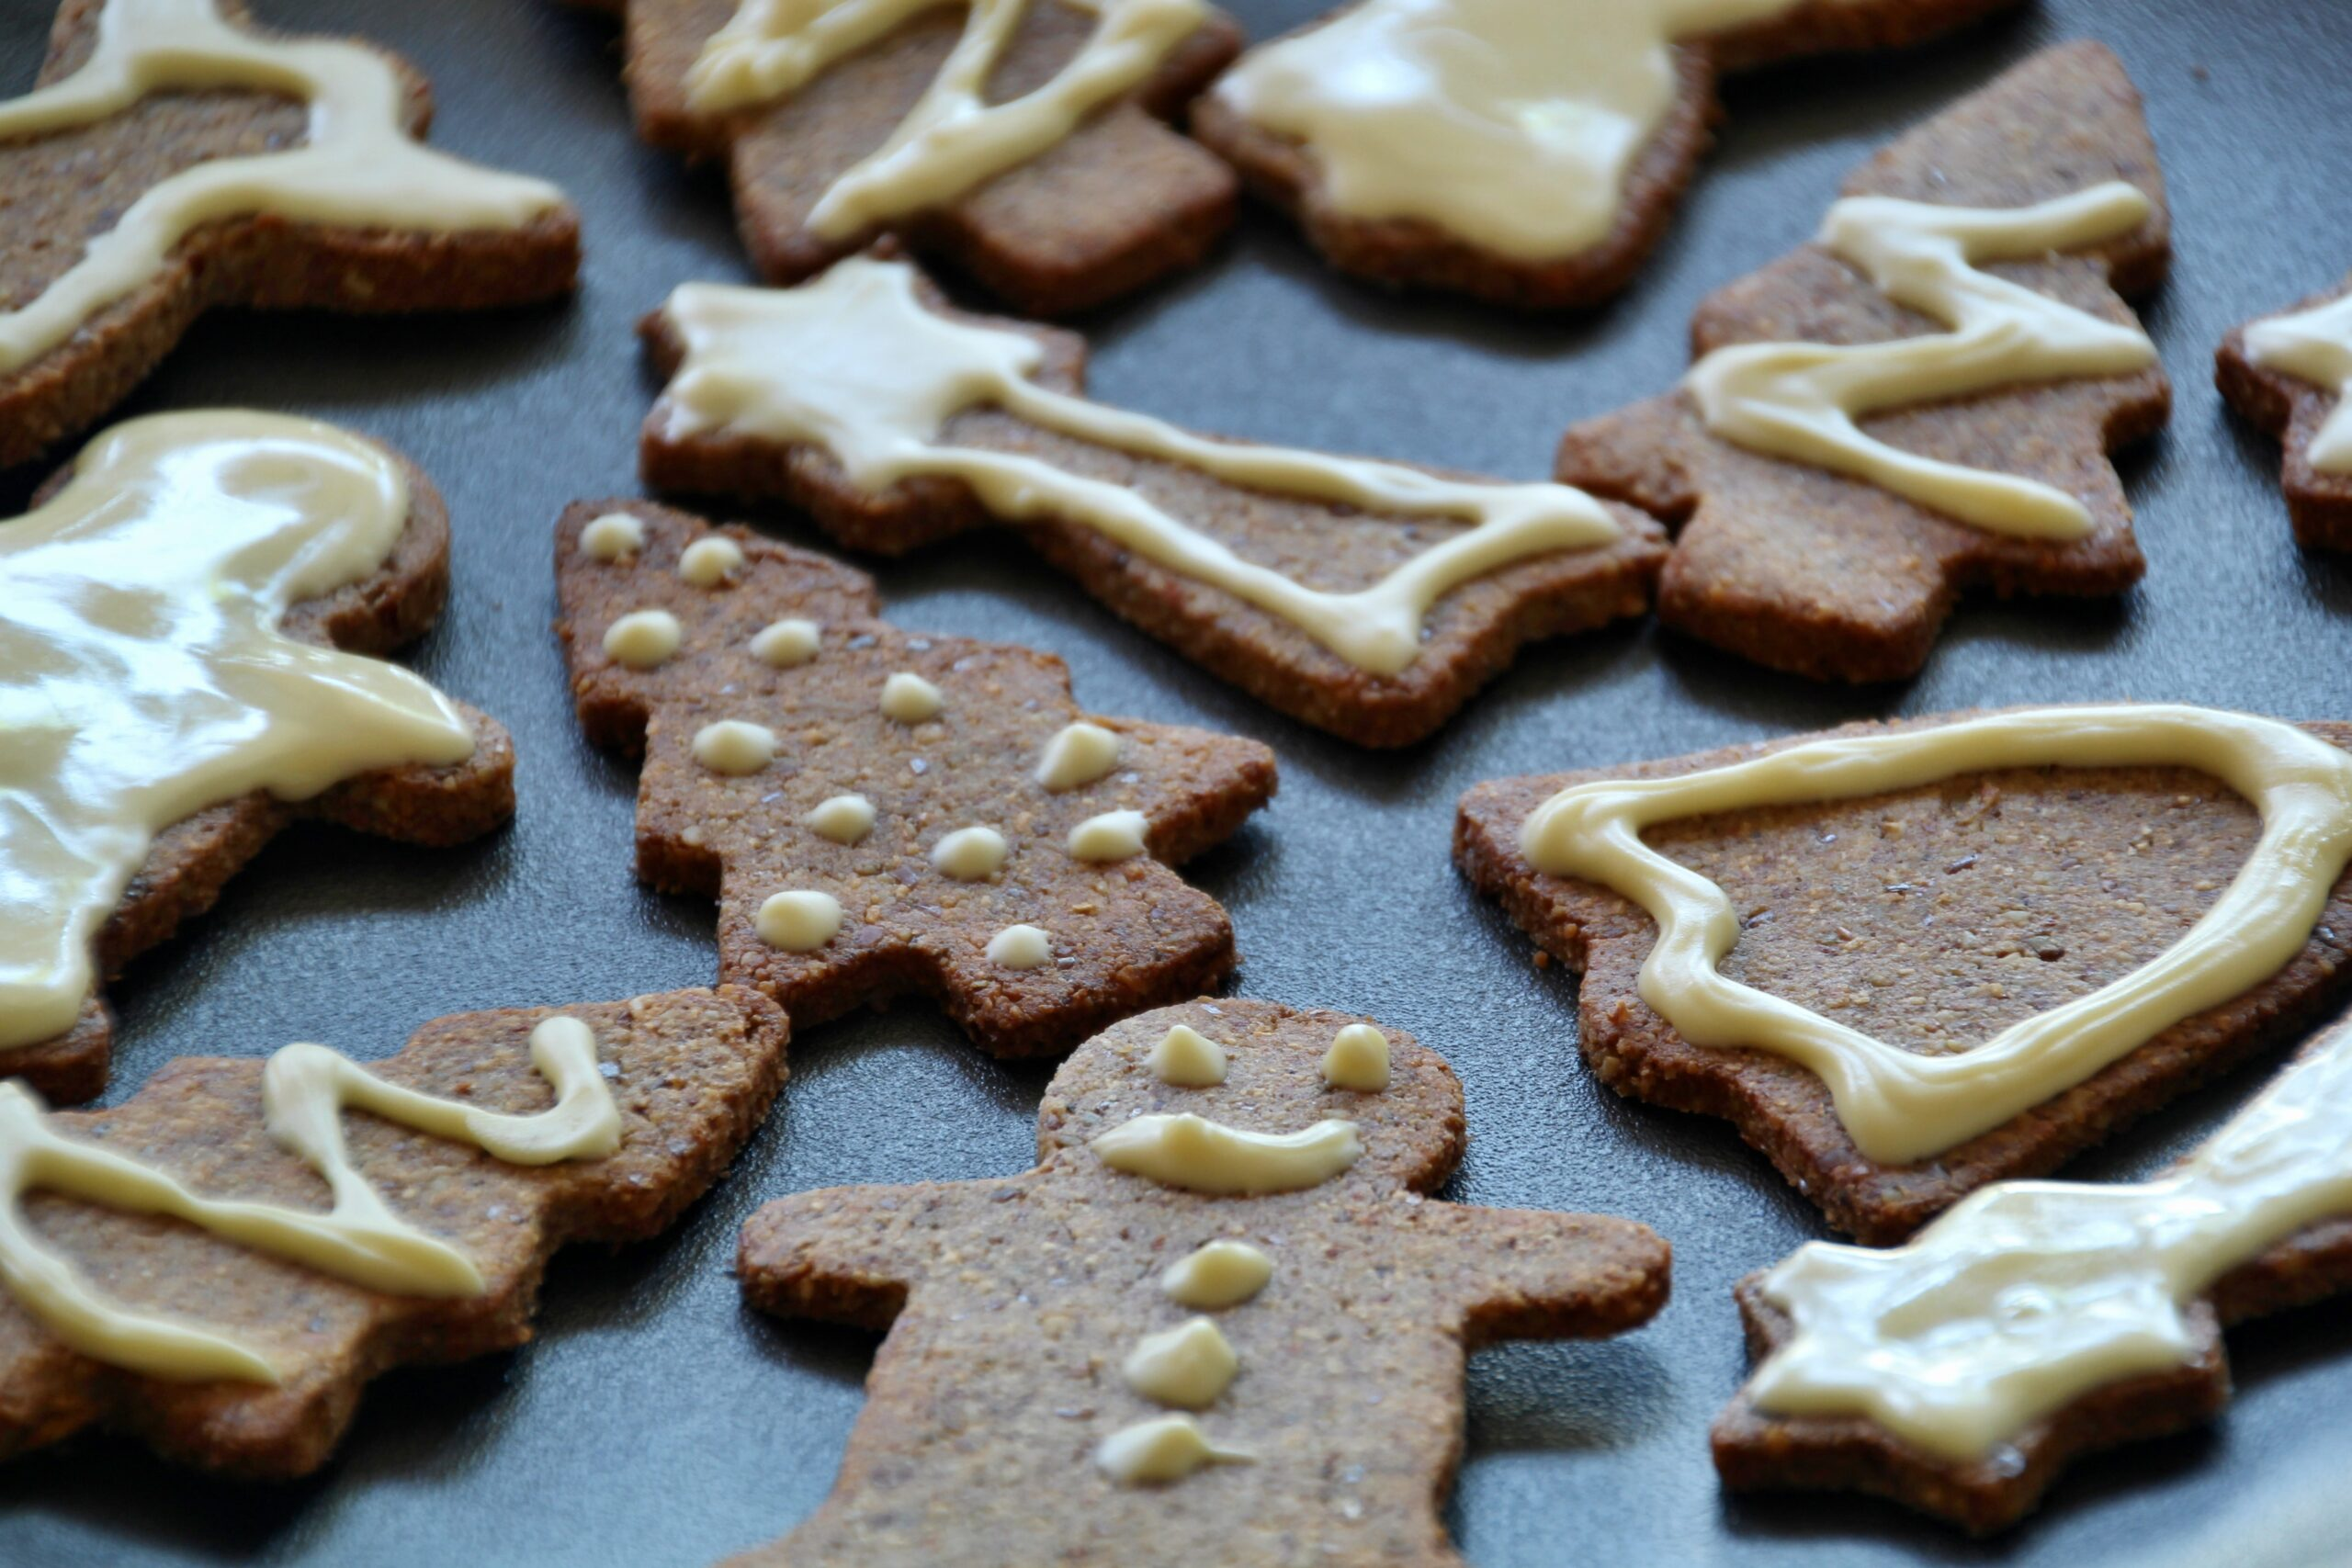 Gingerbread Cookies (Paleo, Low Carb, Keto)